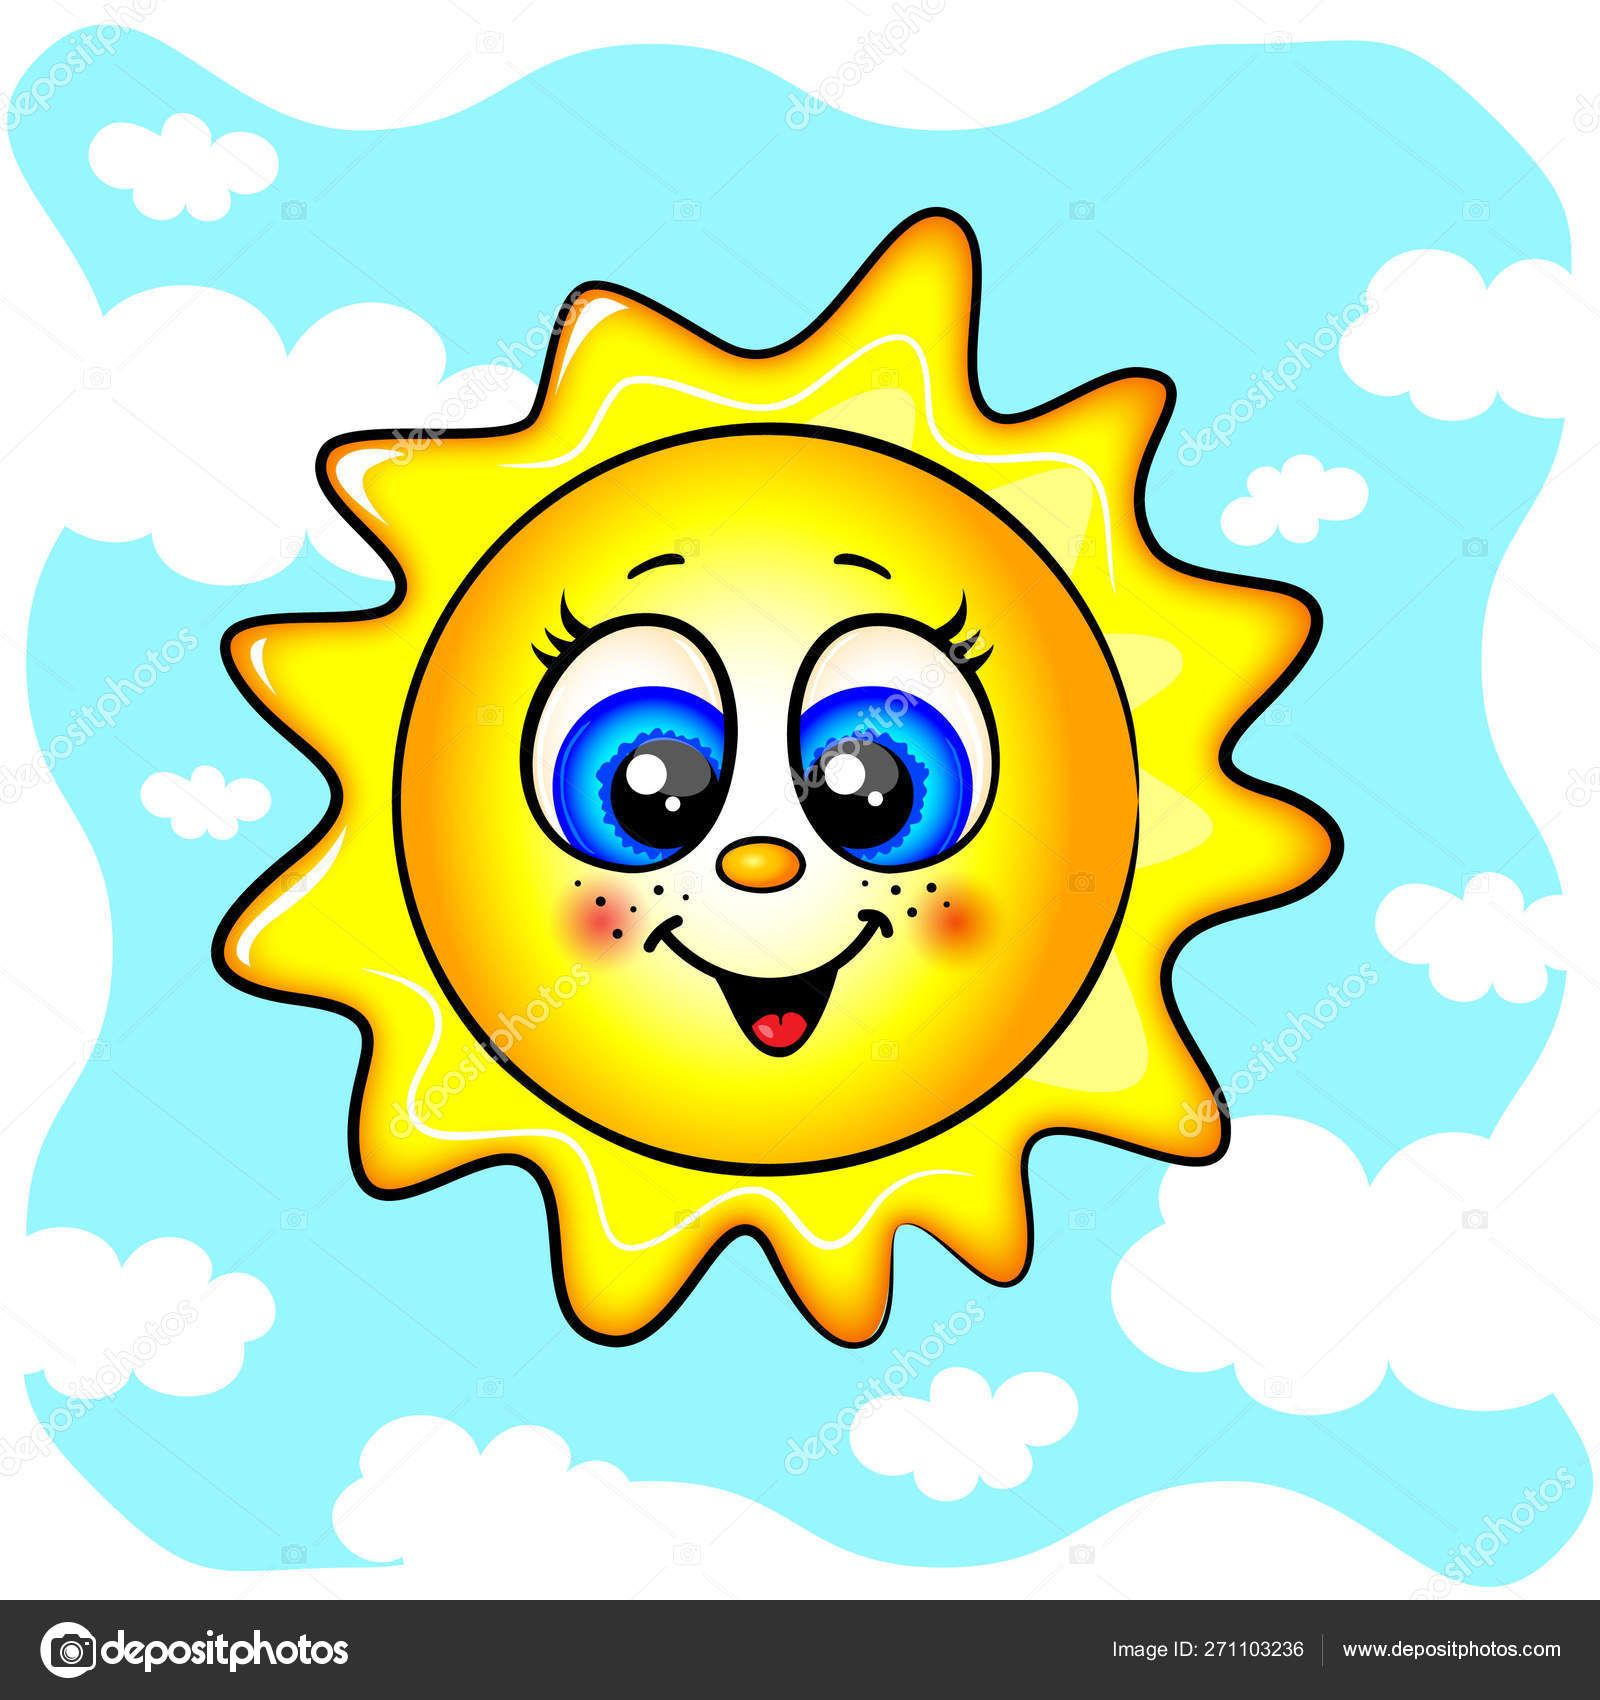 Blue eyes happy color. Sunny clipart object